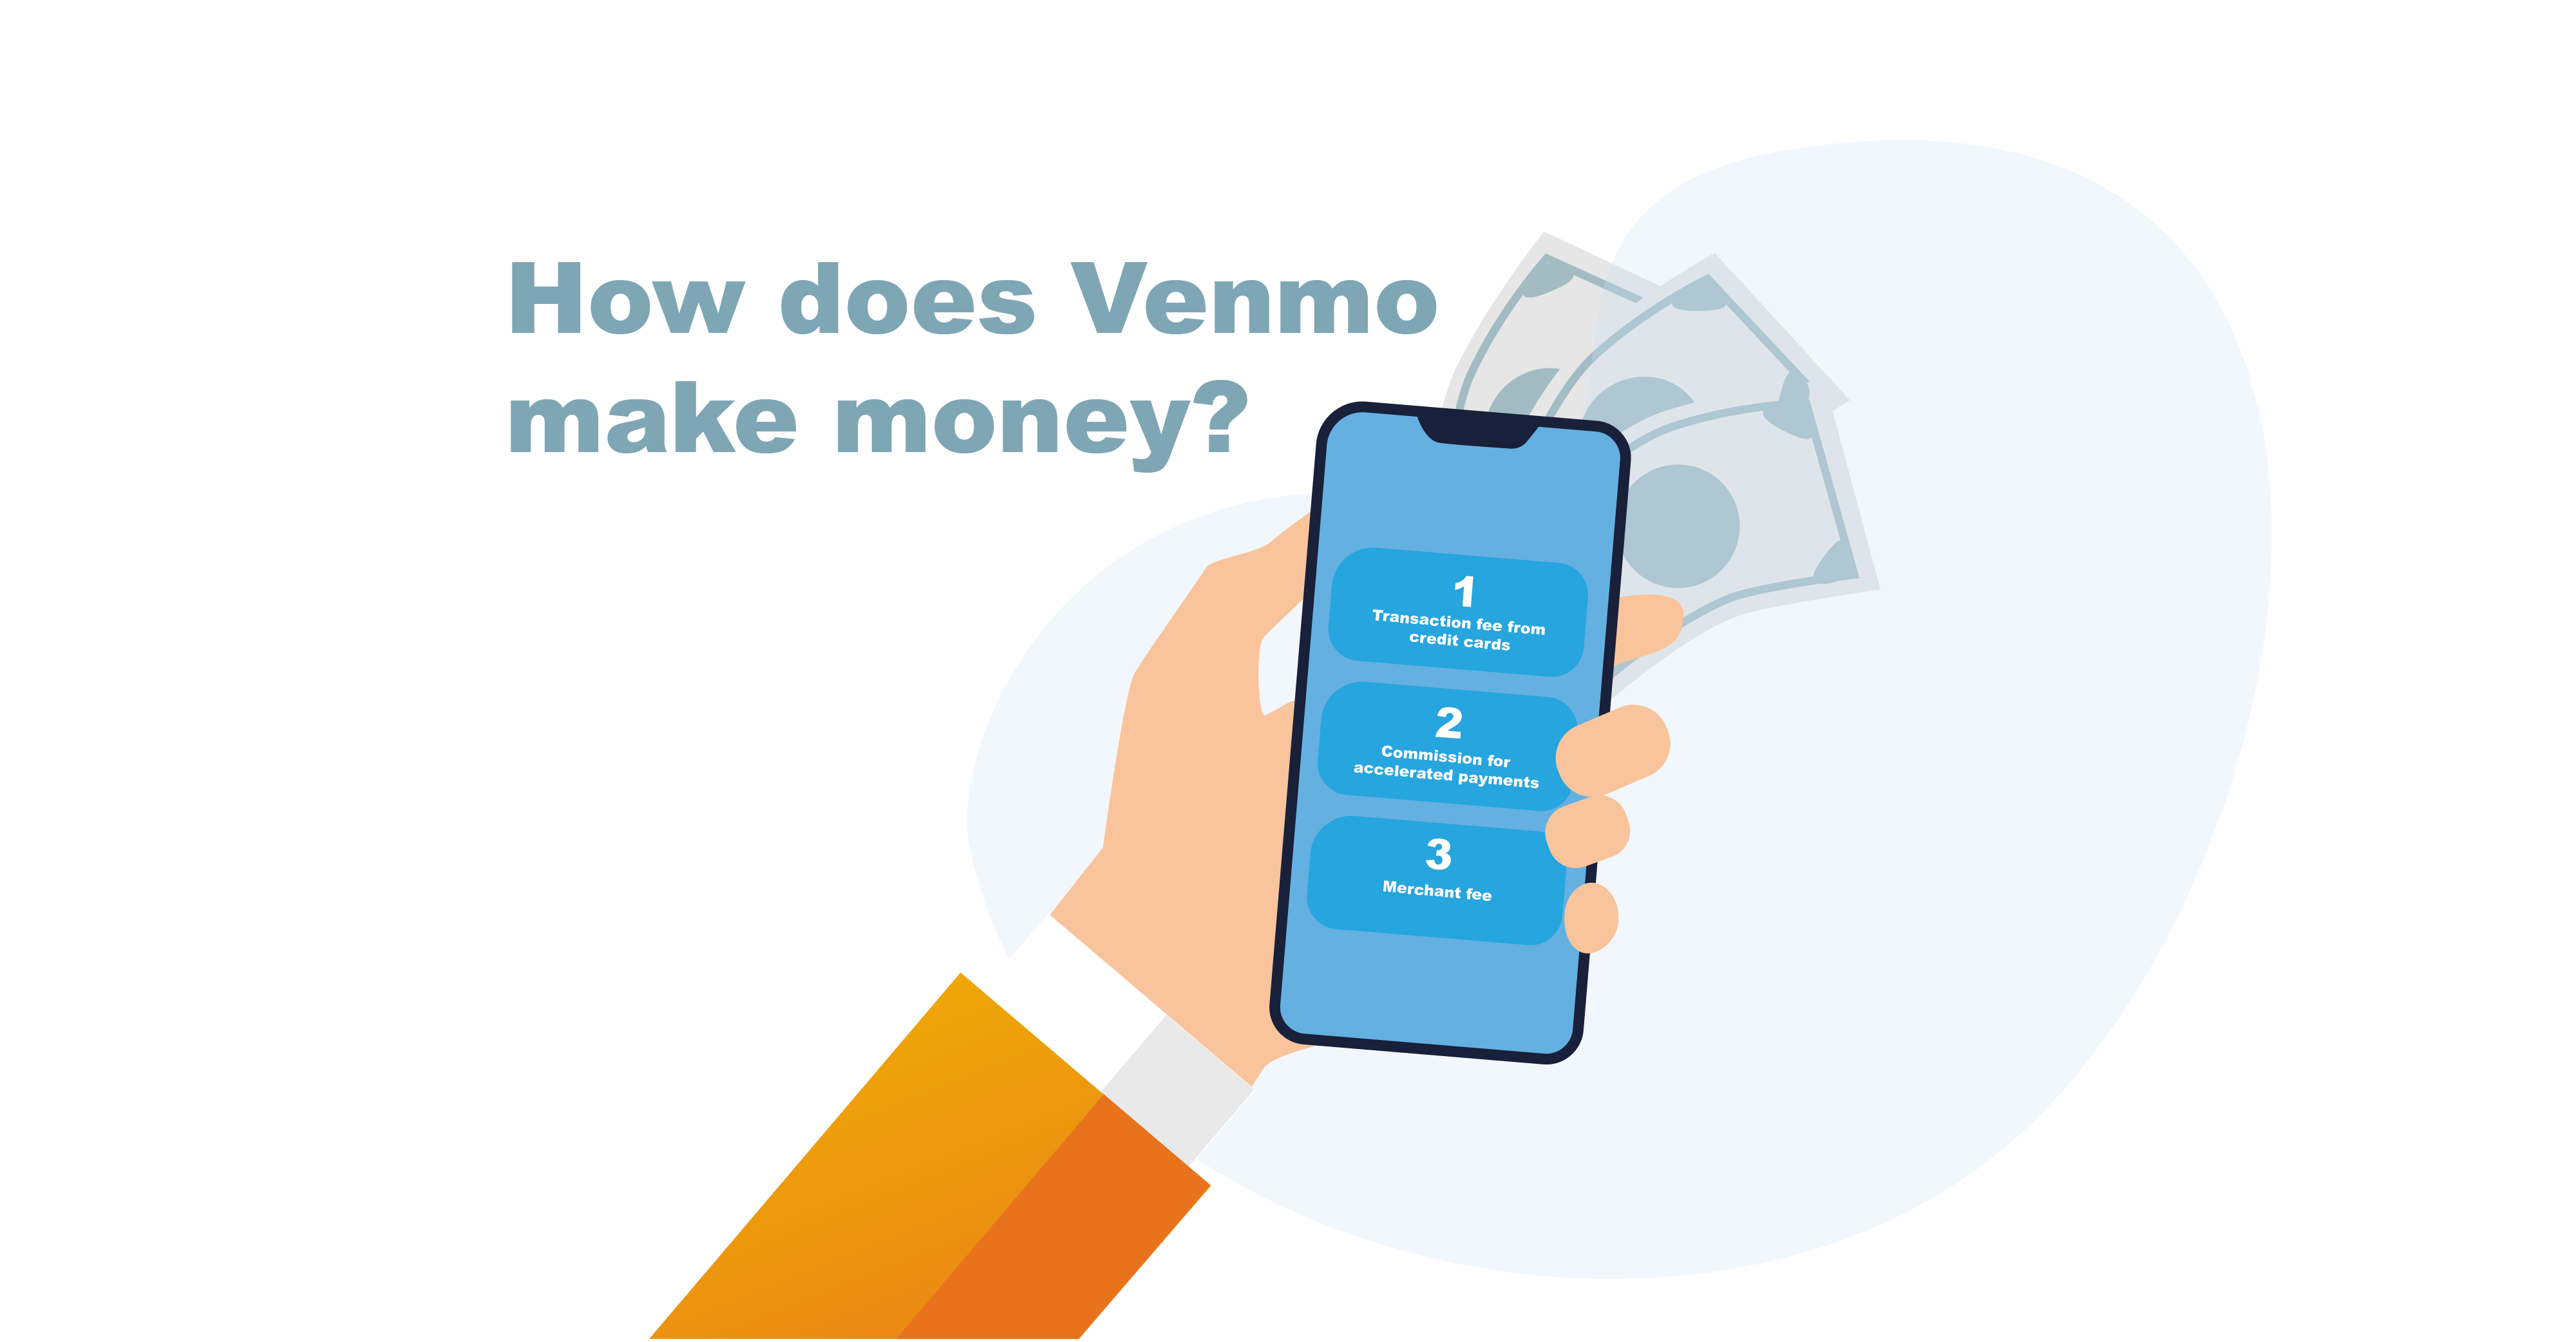 How does venmo make money? 3 ways of monetization